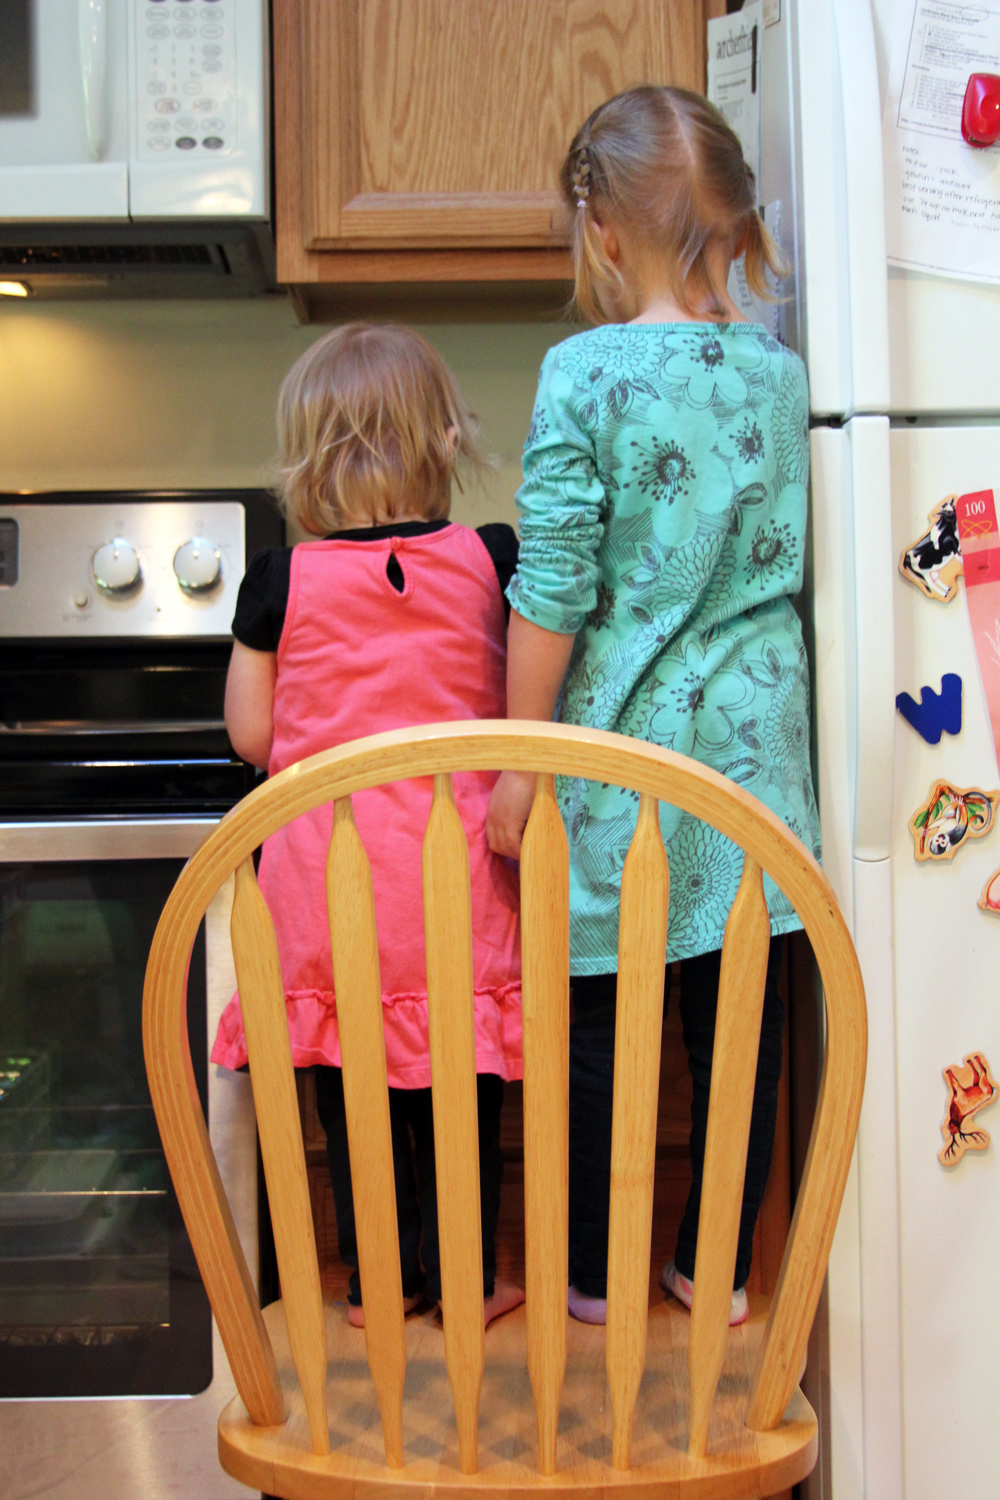 girls standing on chair making food